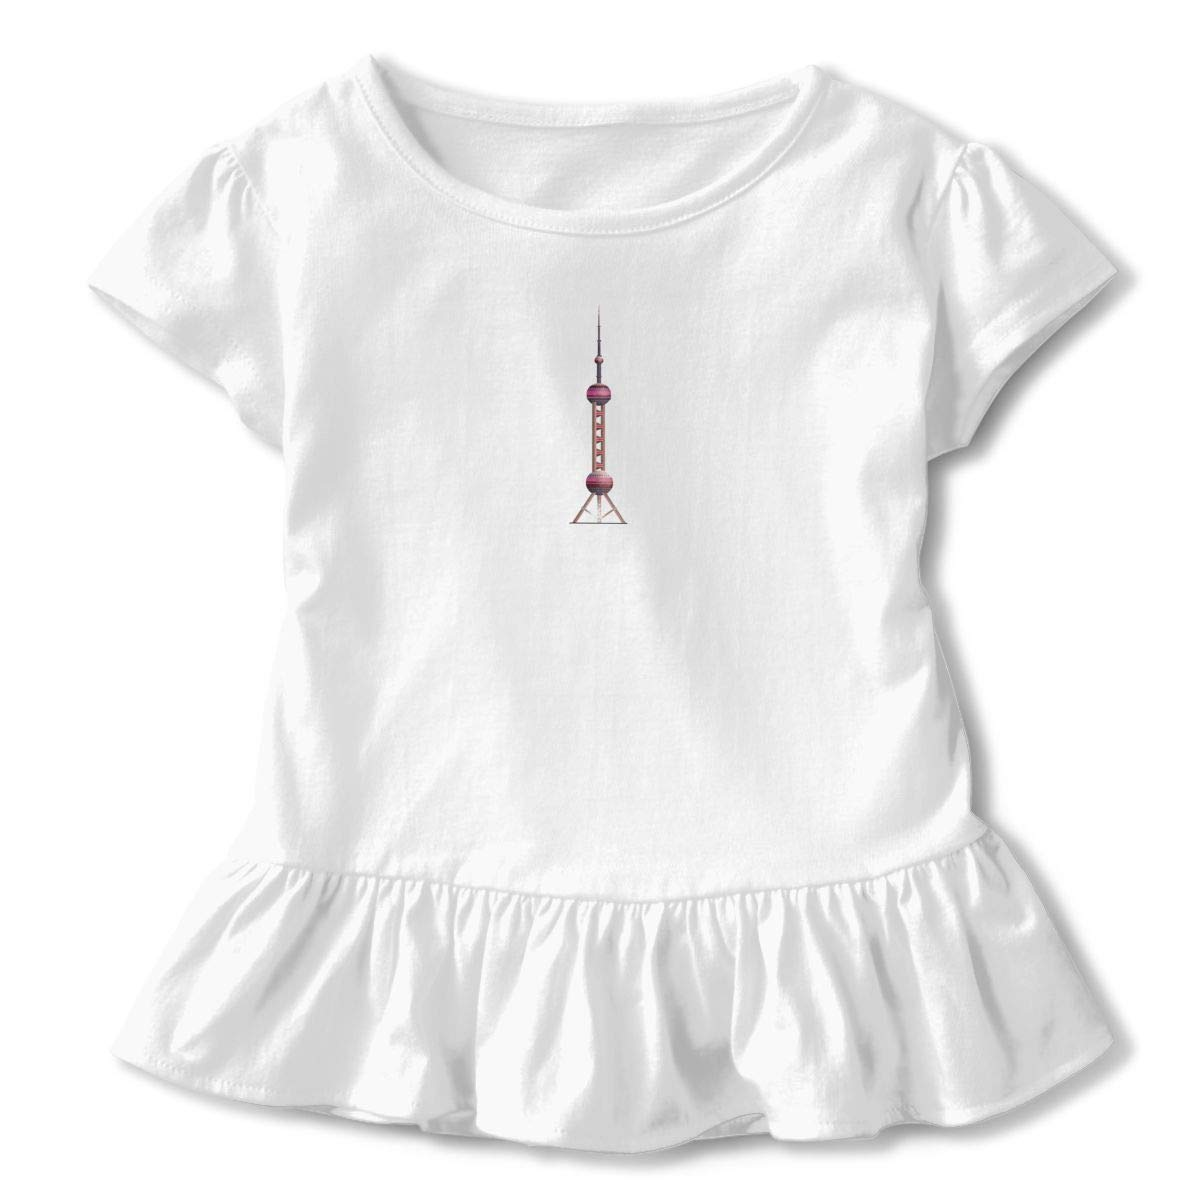 Oriental Pearl Shirt Cartoon Little Baby Girls Flounced T Shirts Cotton Tops for 2-6T Baby Girls